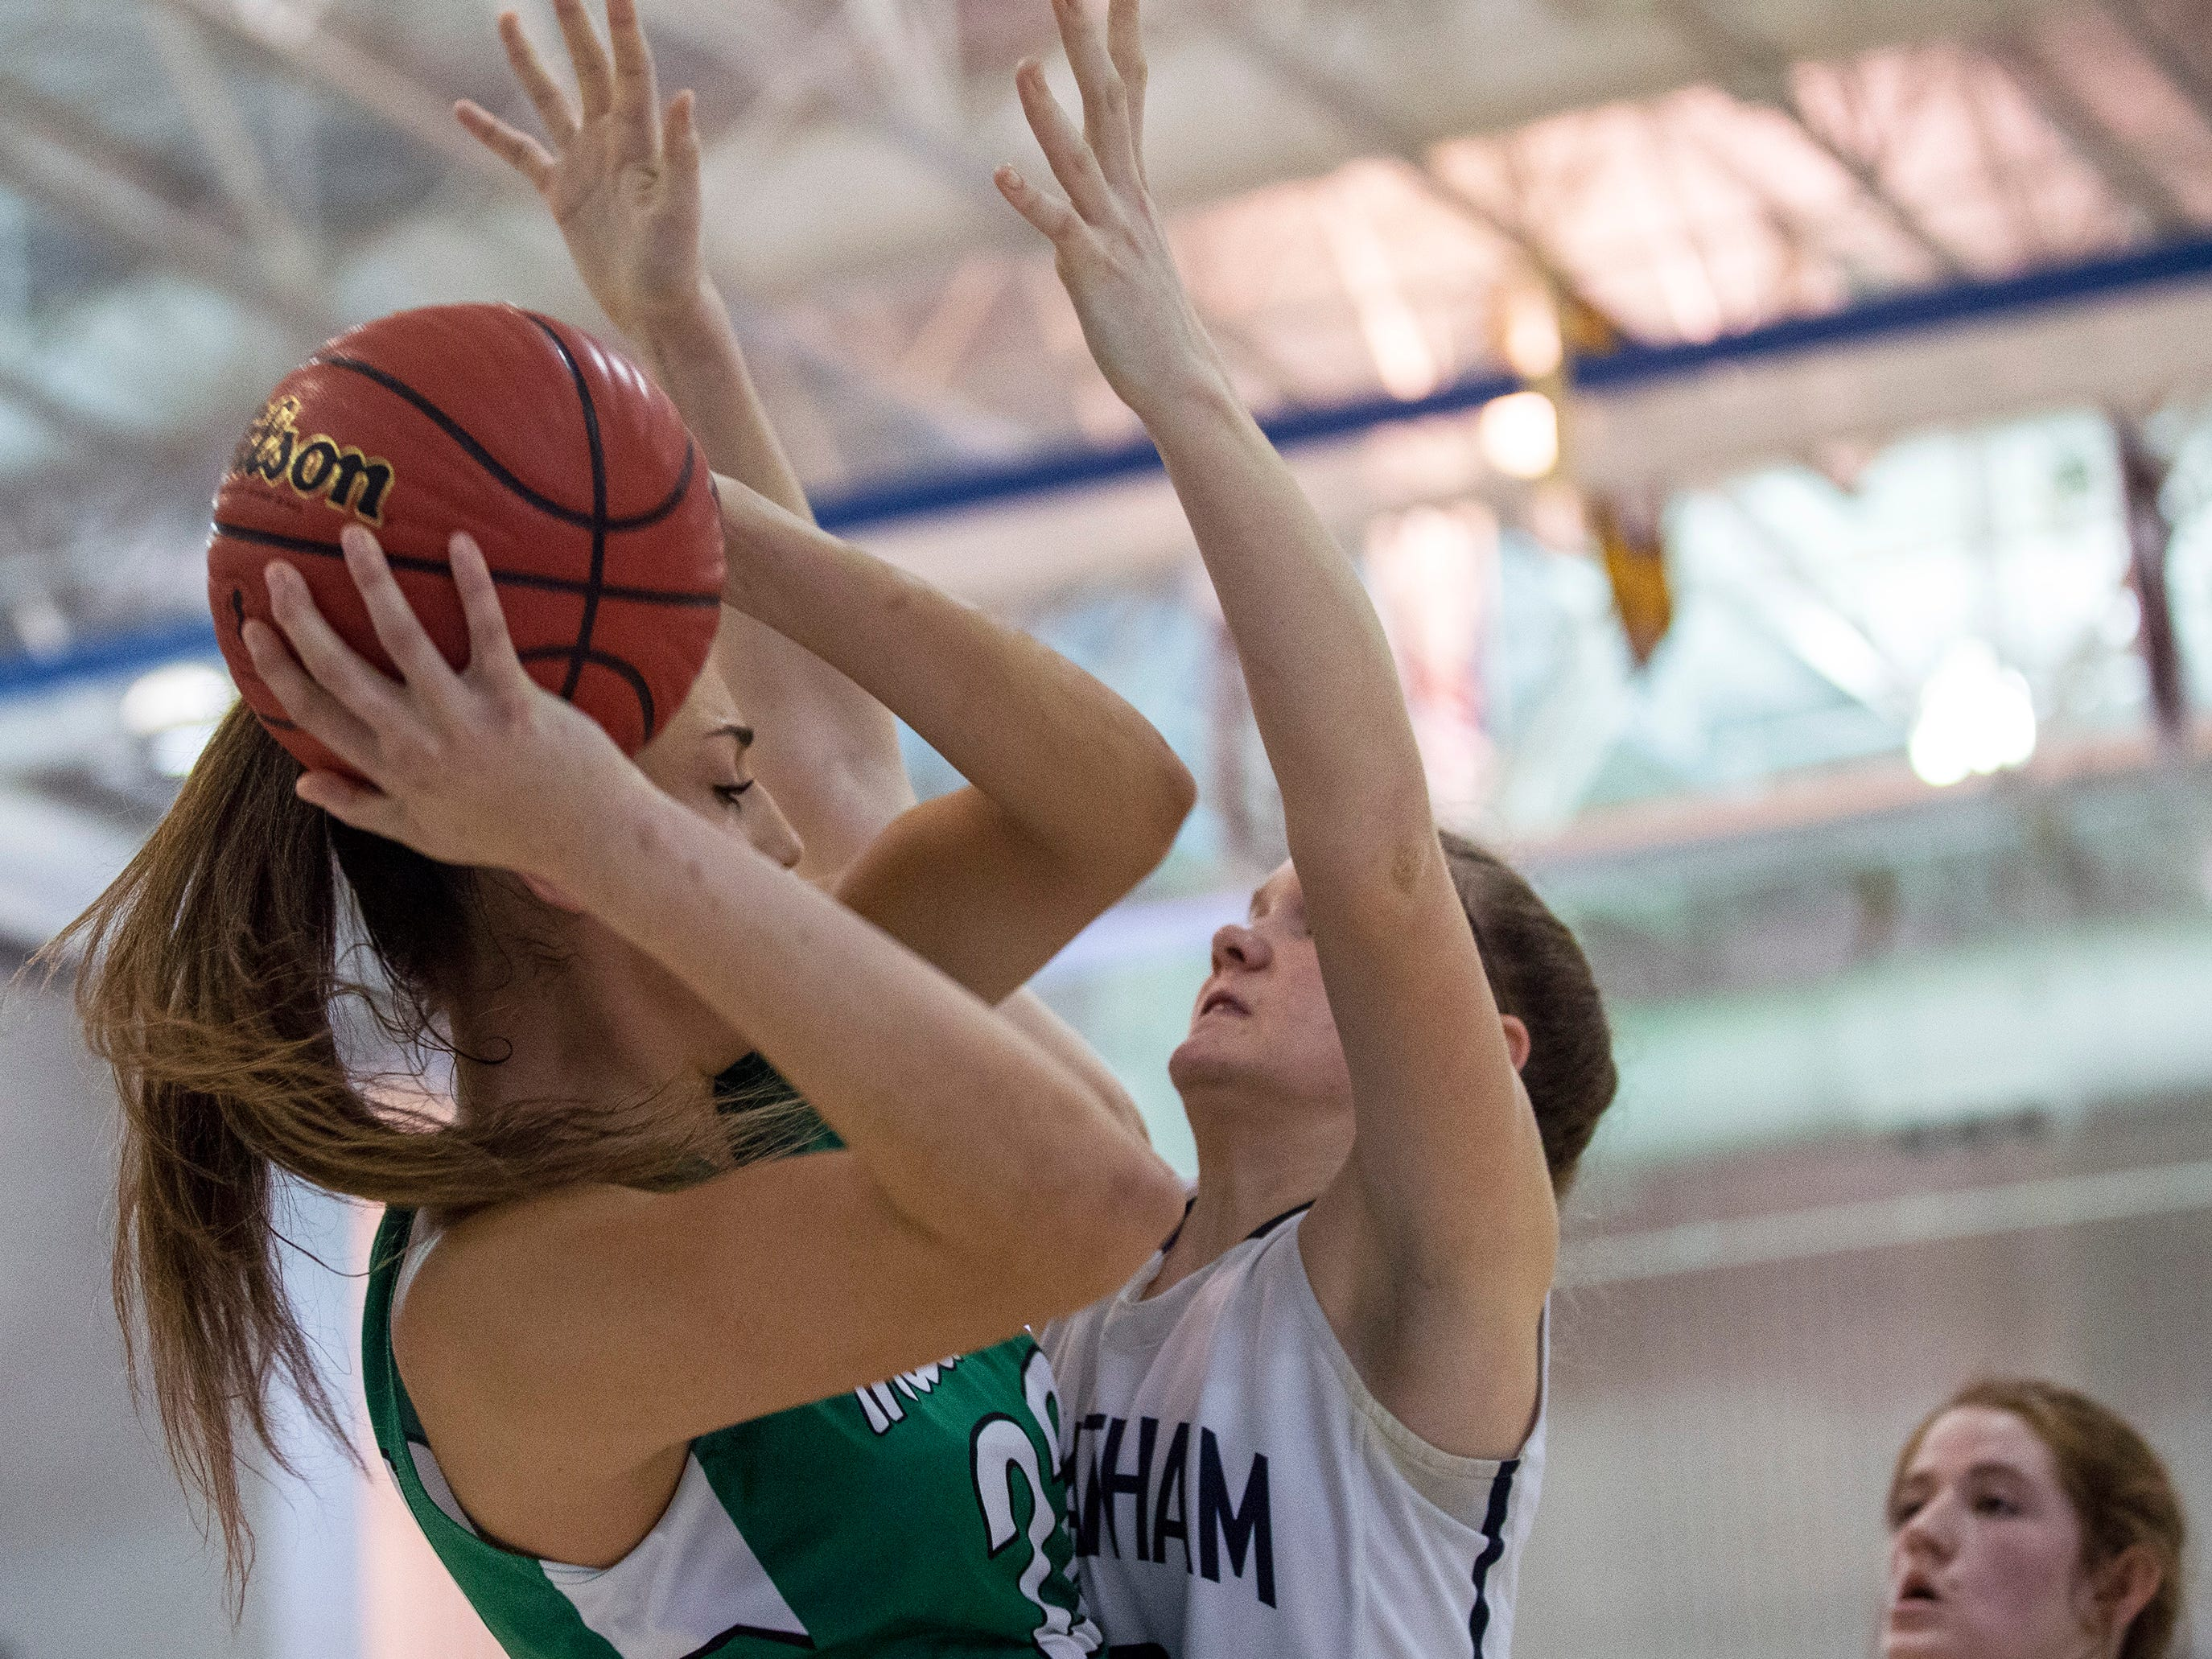 Carly Frohnapfel works hard to guard Kylee Watson, Mainland, during second half action. Chatham Girls Basketball vs Mainland in Girls Group III Final in Toms River on March 10, 2019.